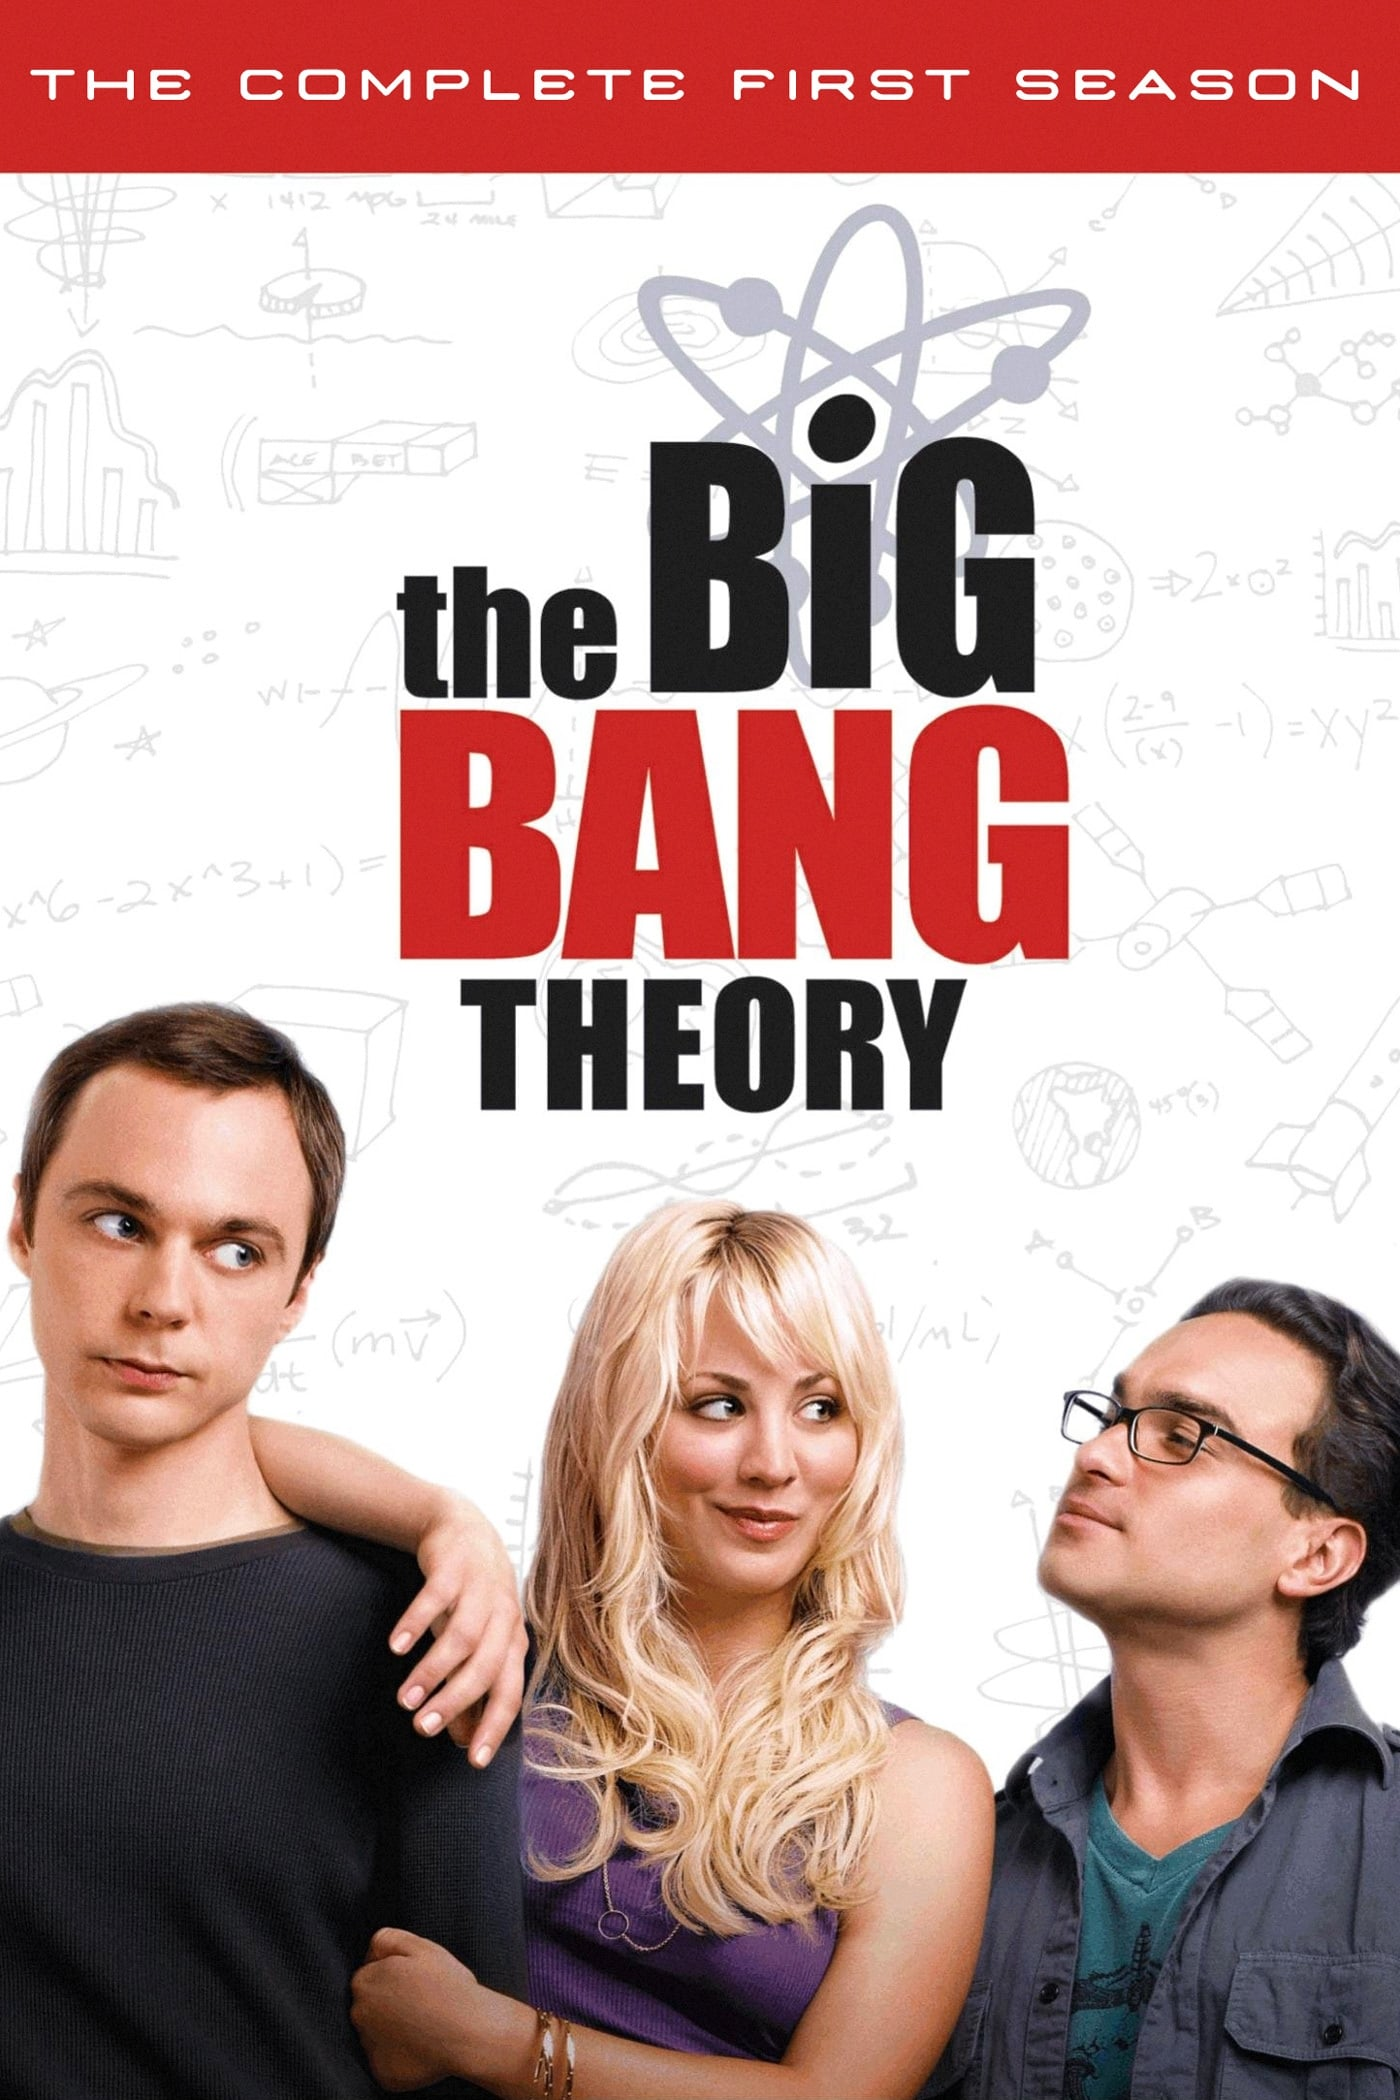 http://kirika.info/the-big-bang-theory-1a-temporada-2007-bluray-720p-dual-audio-torrent-download/